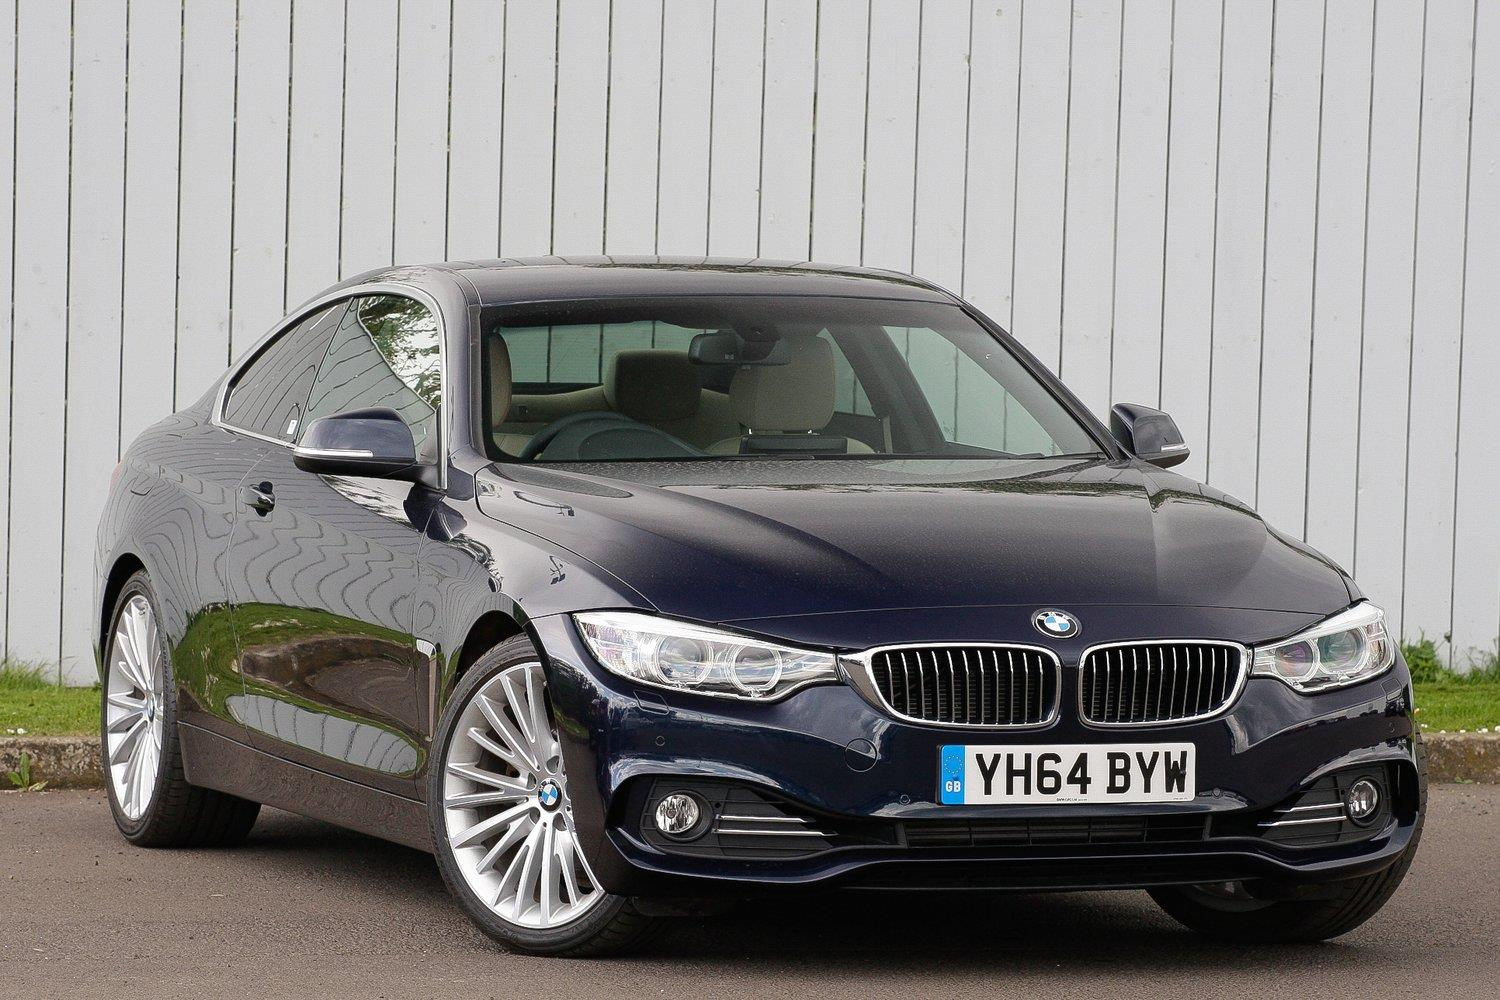 BMW 4 Series Coupé YH64BYW - Image 2